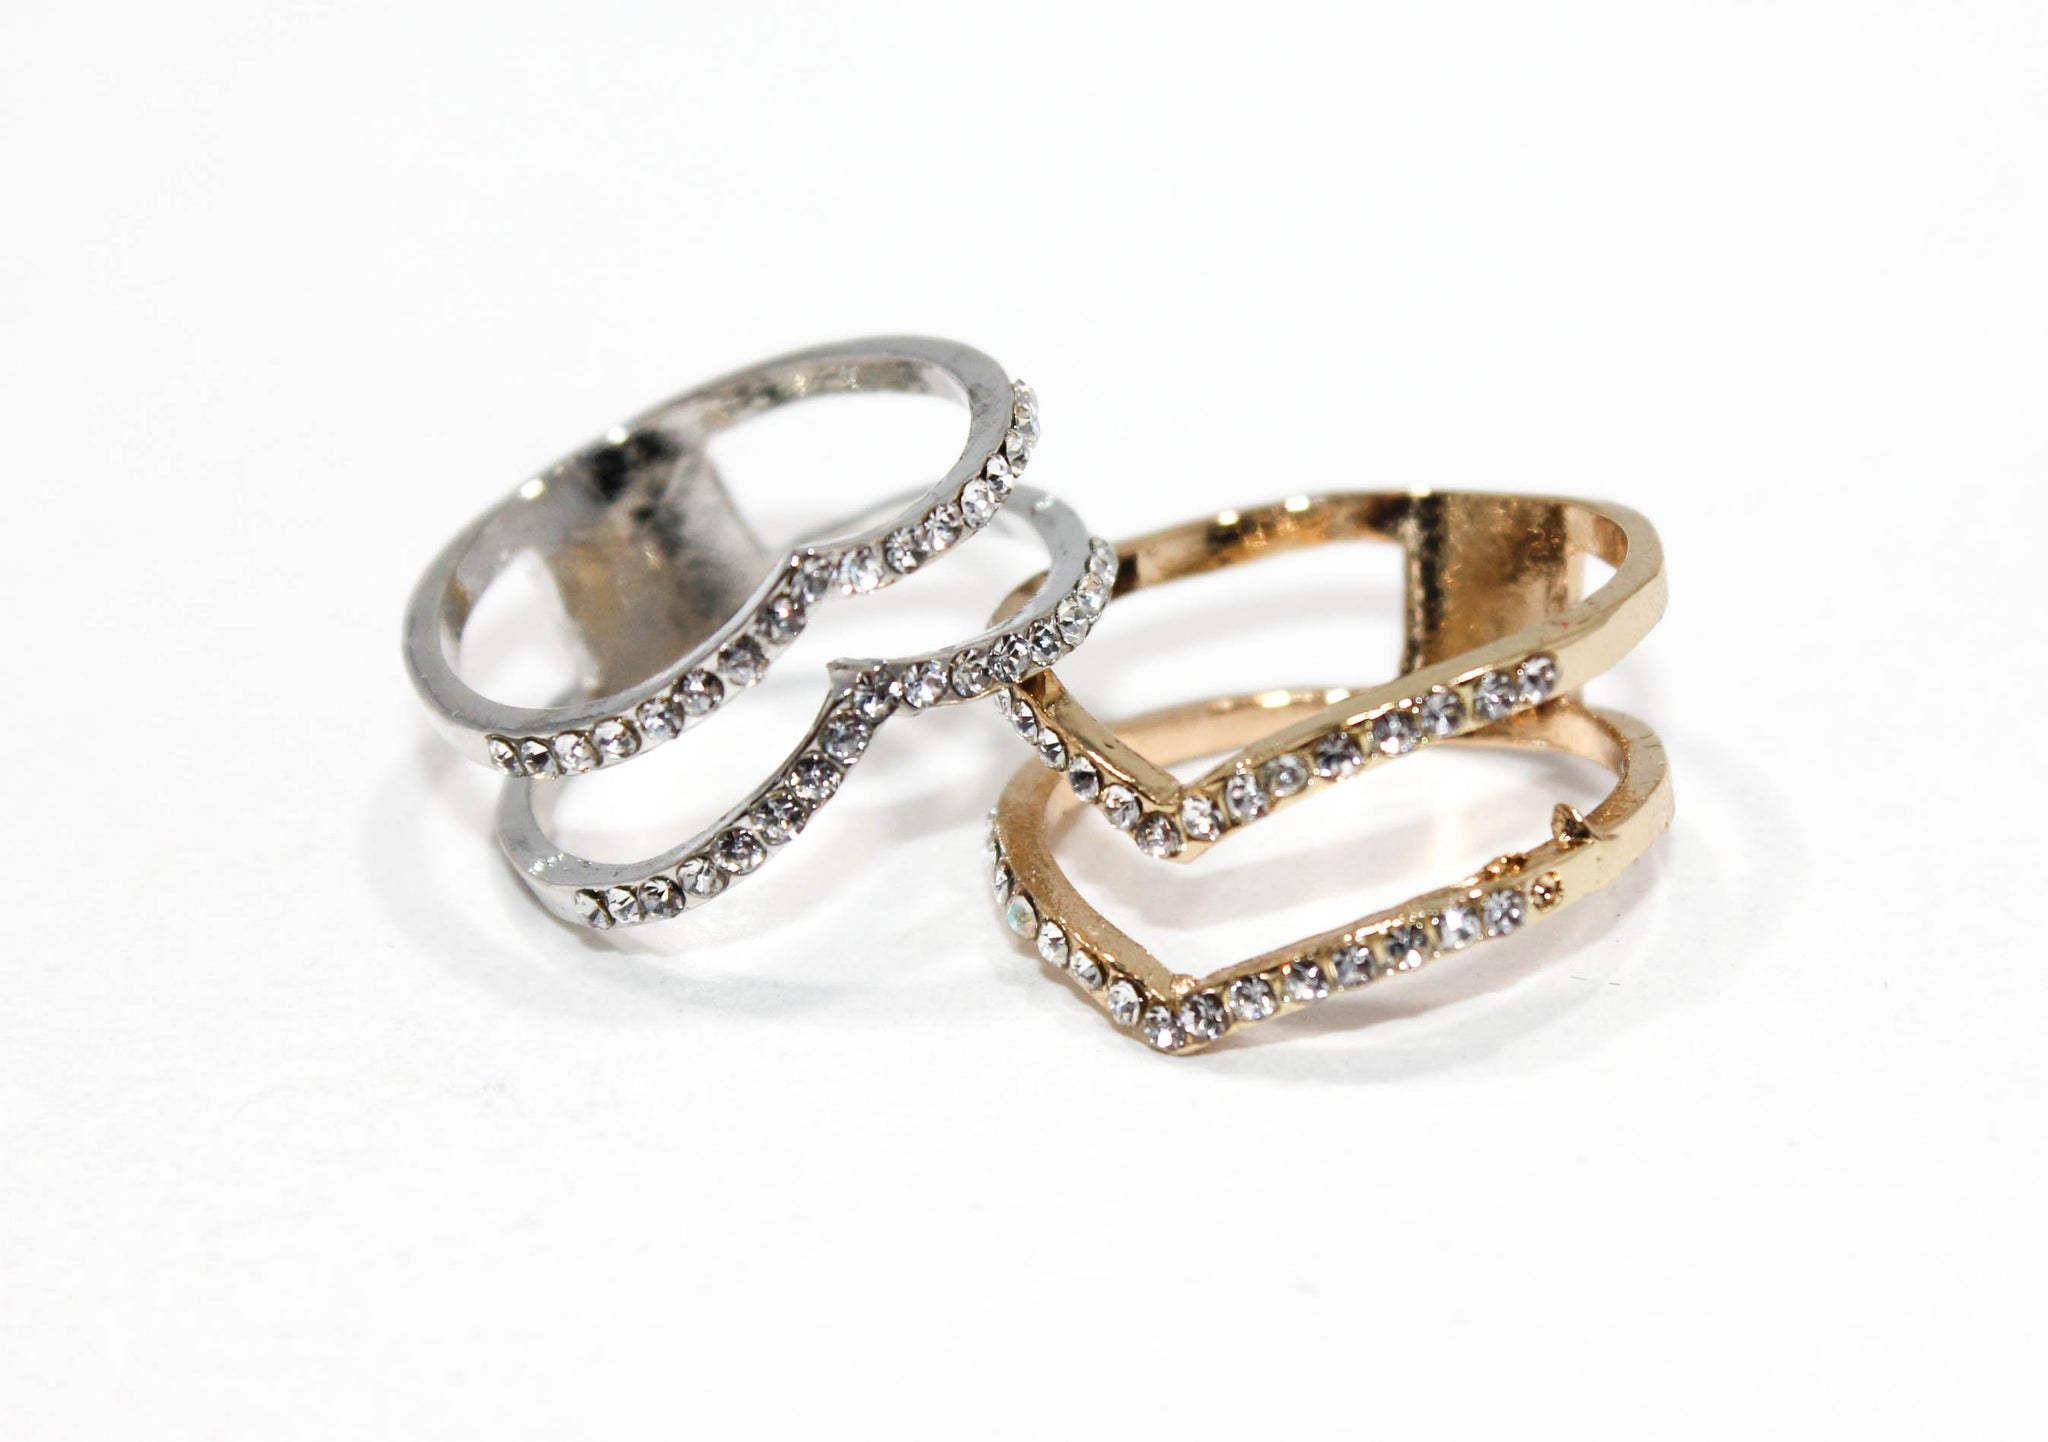 contrast copyyg ring copy cage of jewellery products engagement natalie rings marie textured layered